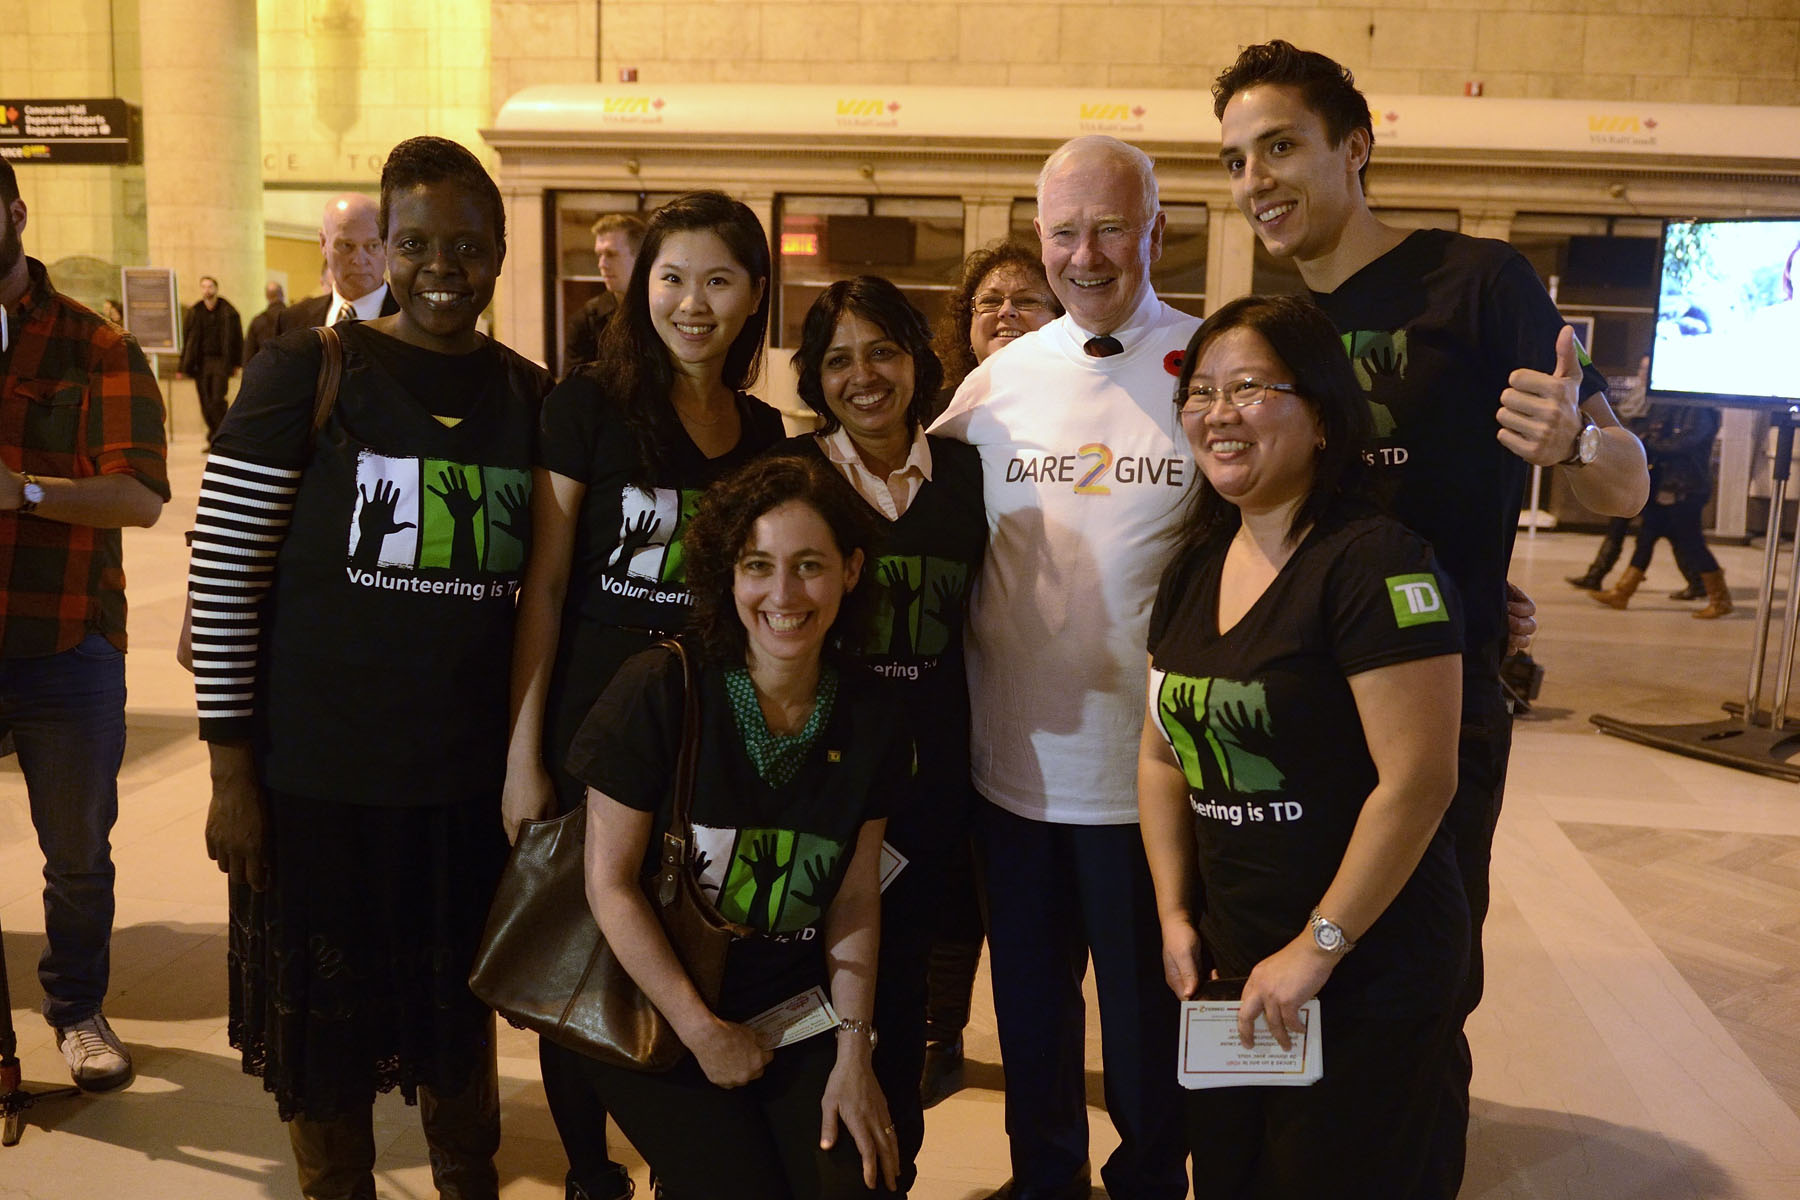 TD Bank Group volunteers joined the Governor General for this event, as one of the national partners of the My Giving Moment campaign,